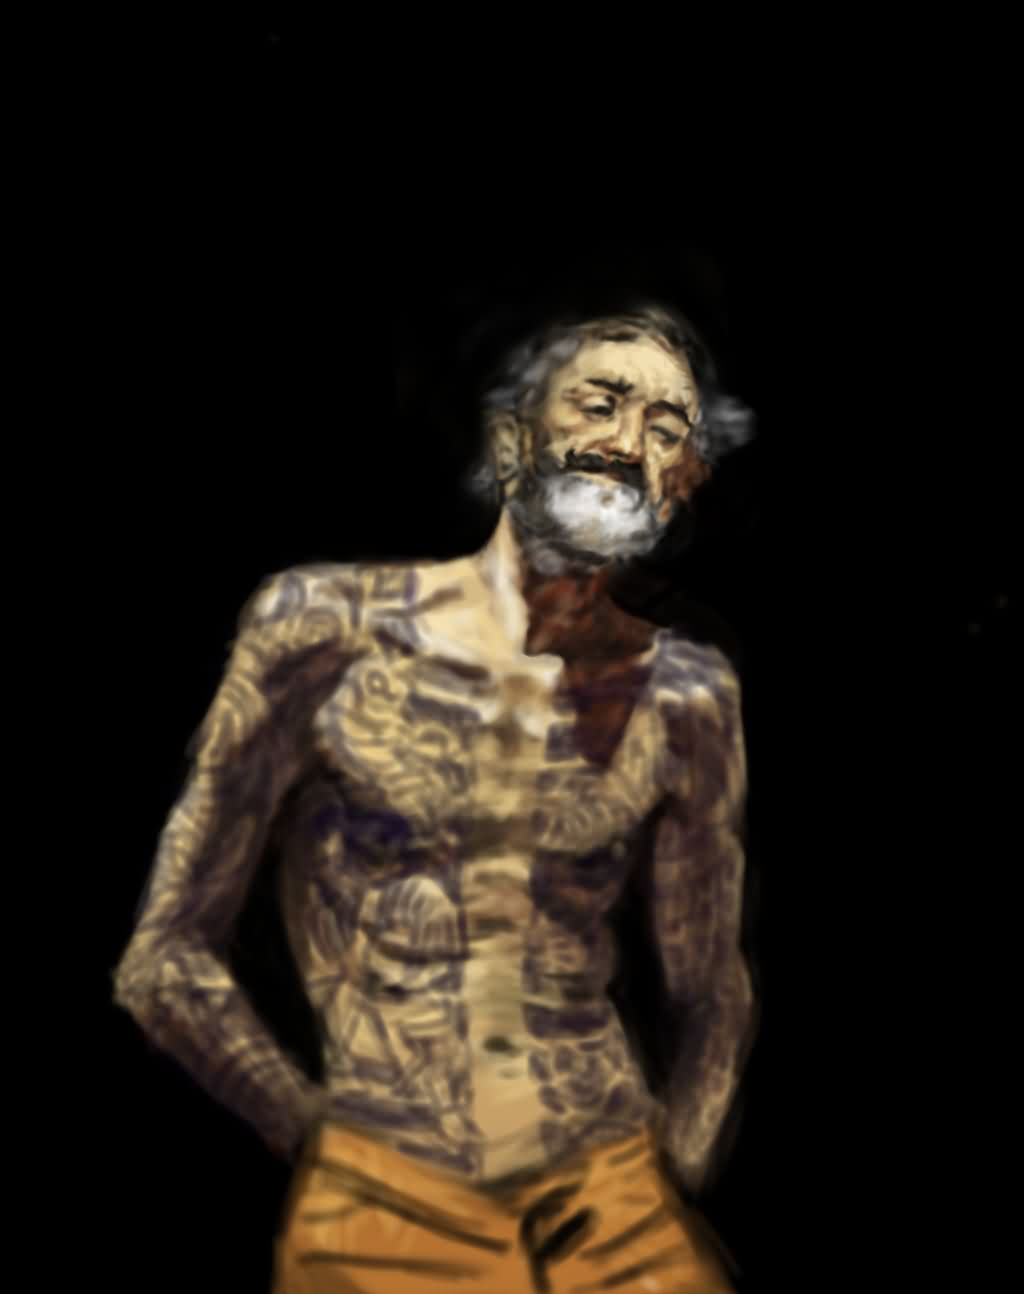 Fortuny Tribute Old Man Tattooed